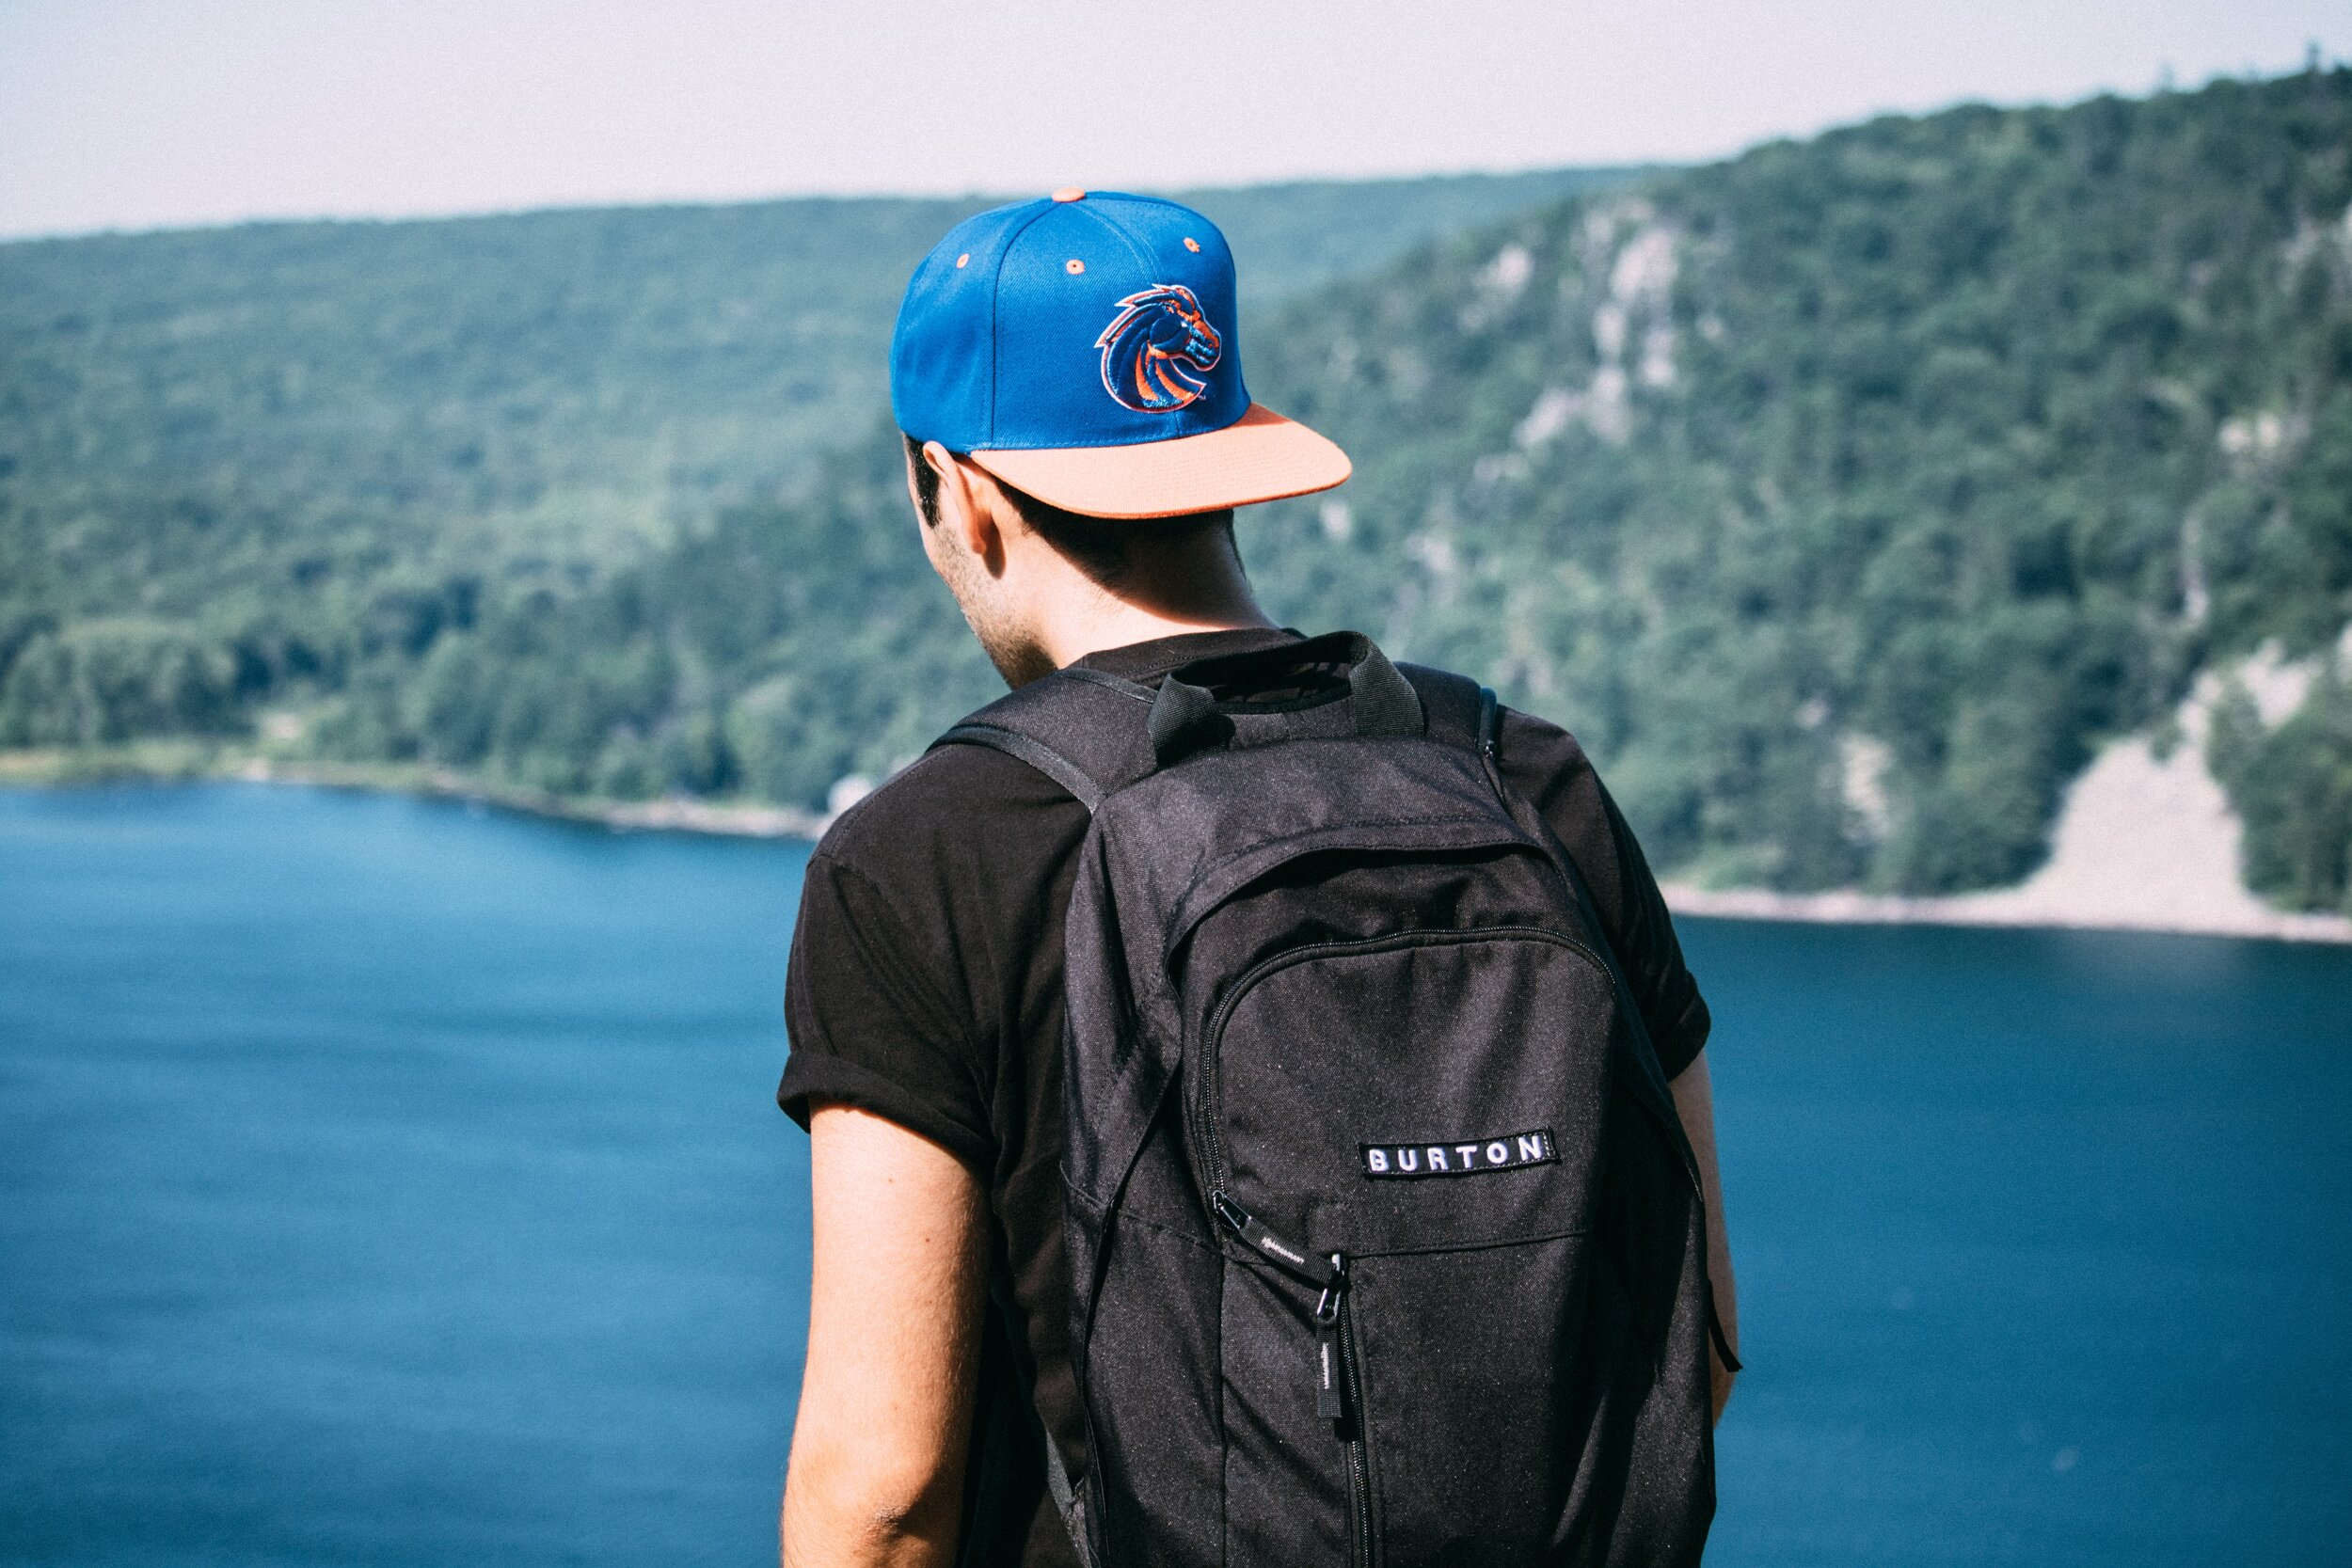 <h4> The Top Hiking Spots in Bayfield, WI </h4>